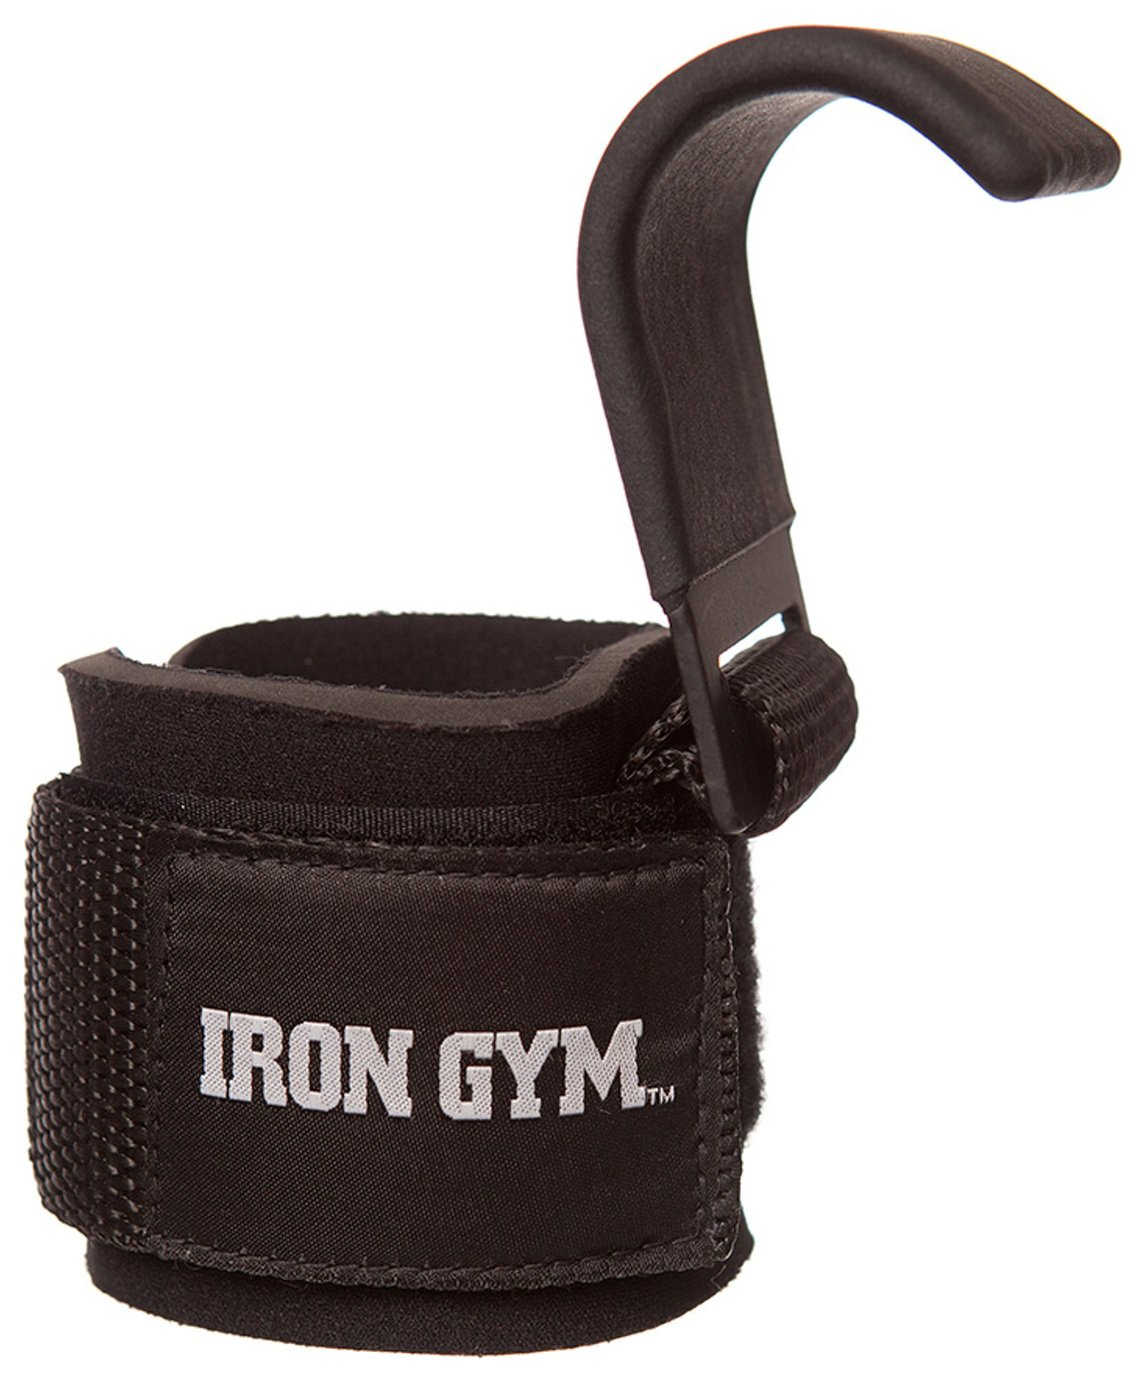 Iron Gym Iron Grip and Wrist Support